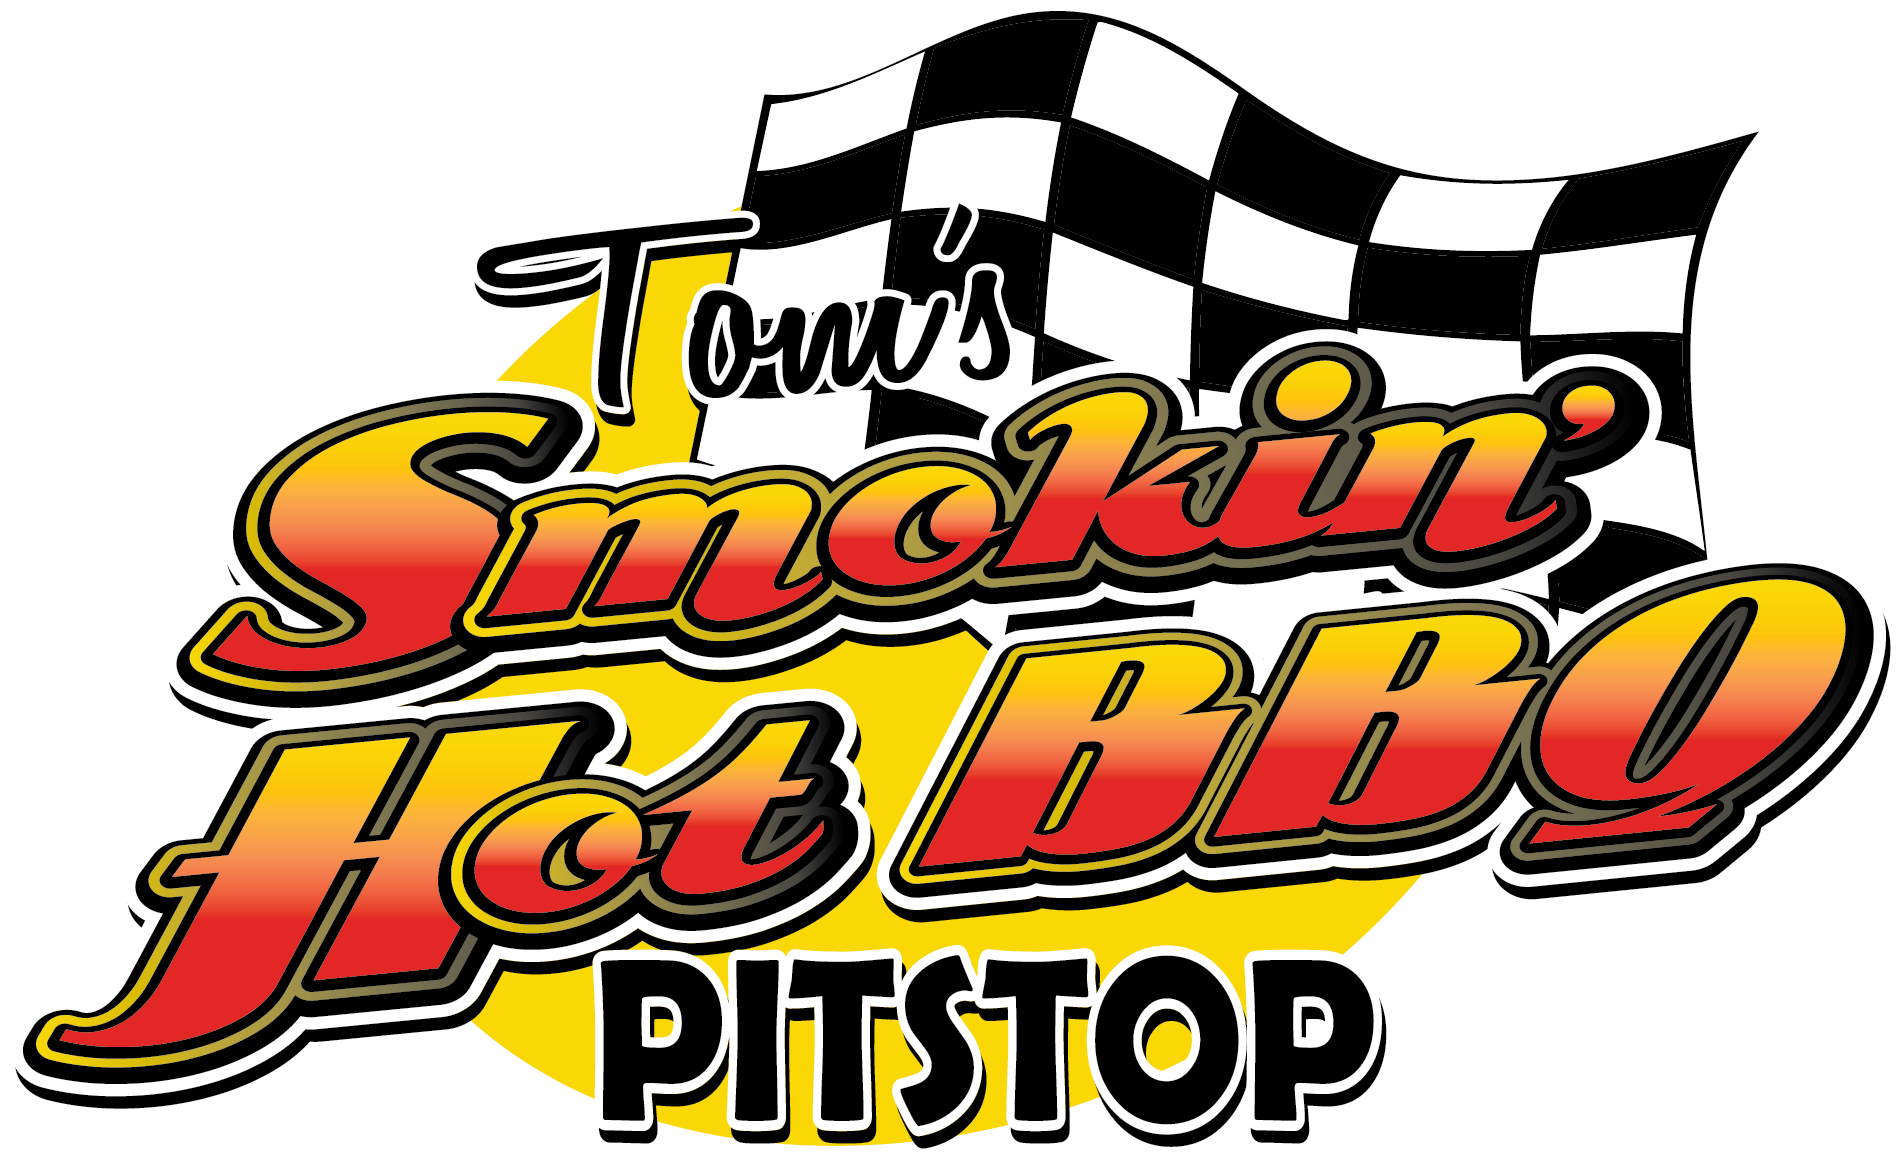 Tom's BBQ Pitstop Spice Blends and BBQ Sauces